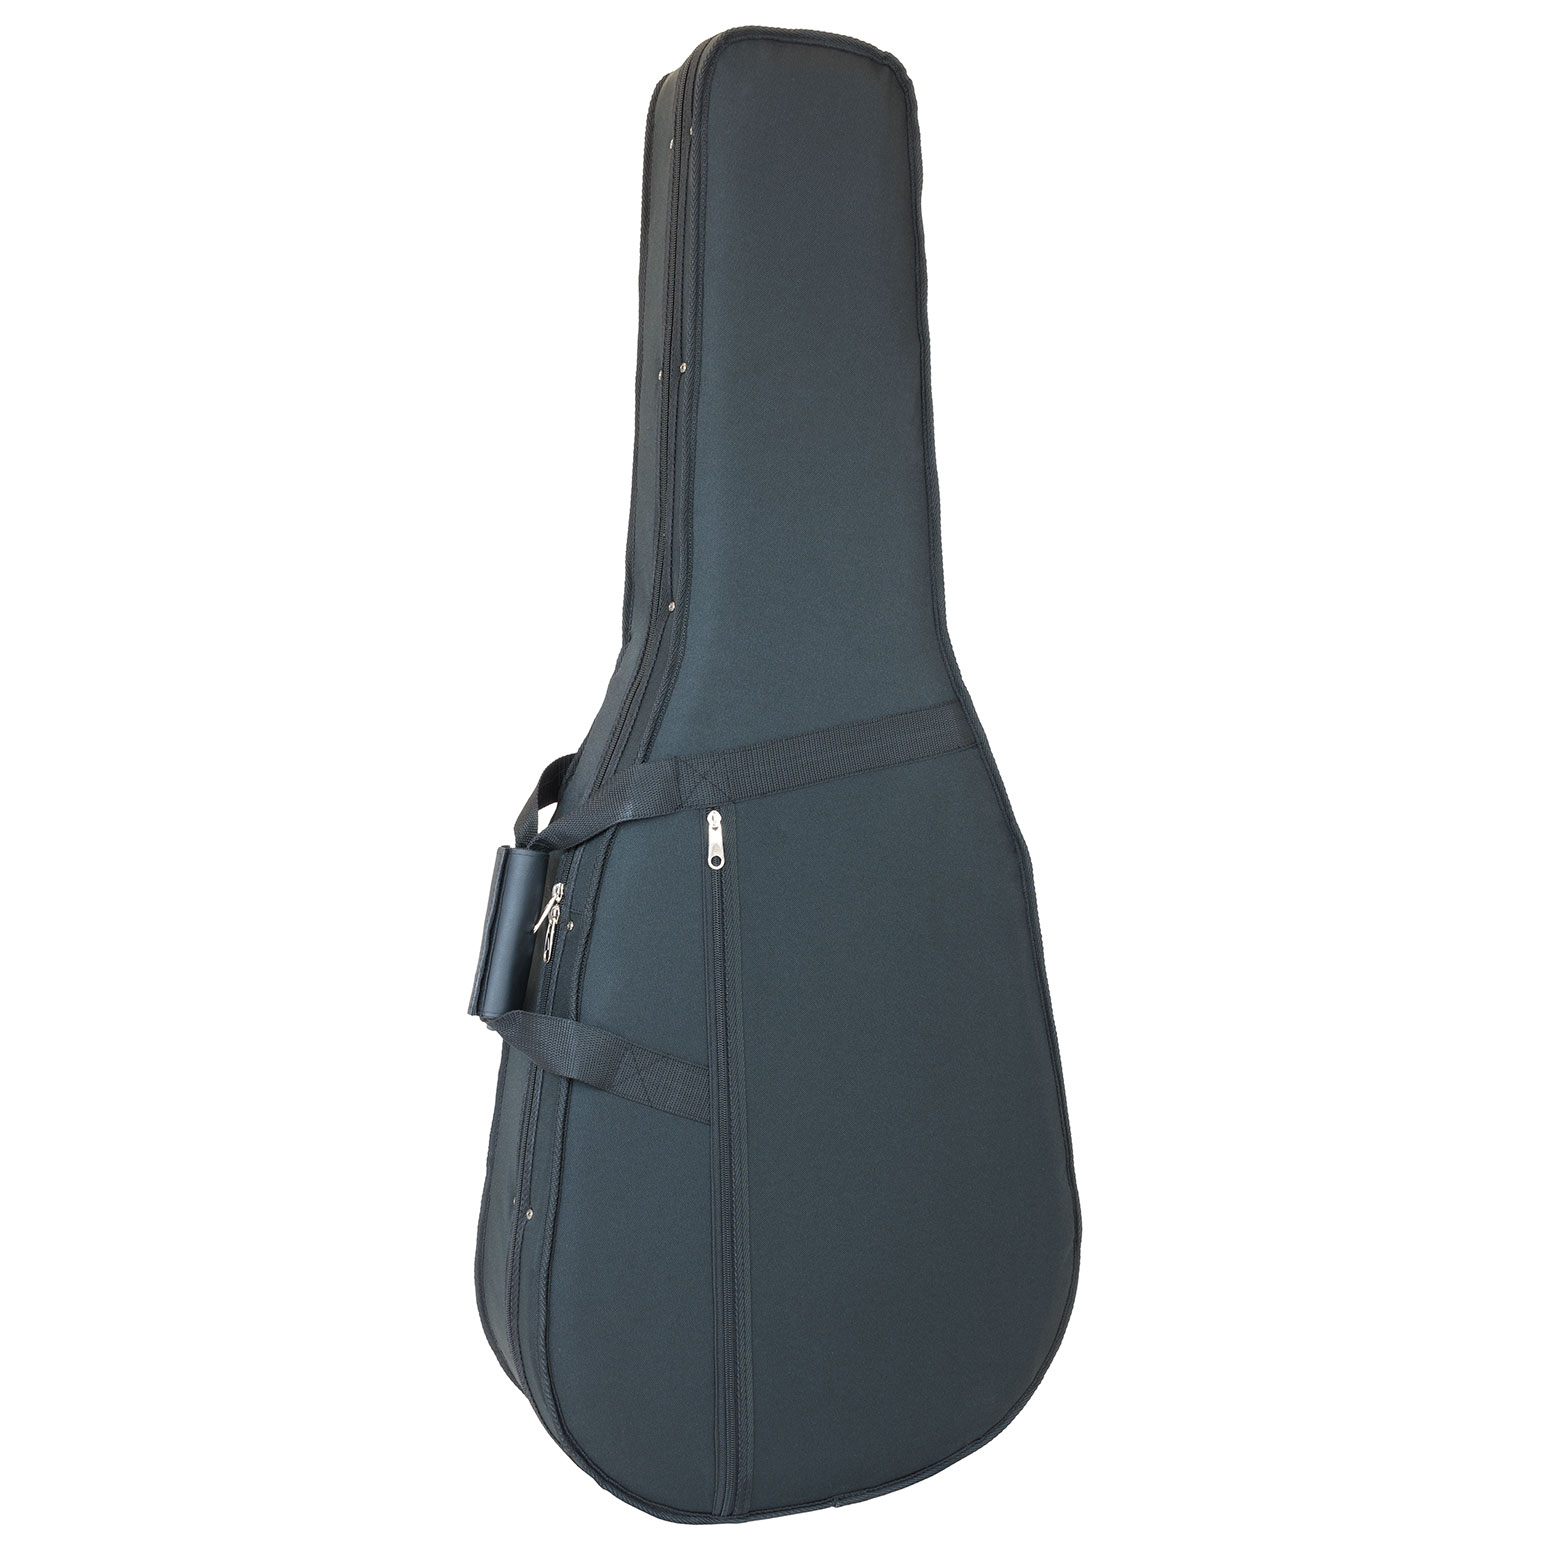 Acoustic guitar gig bag with moulded interior in black